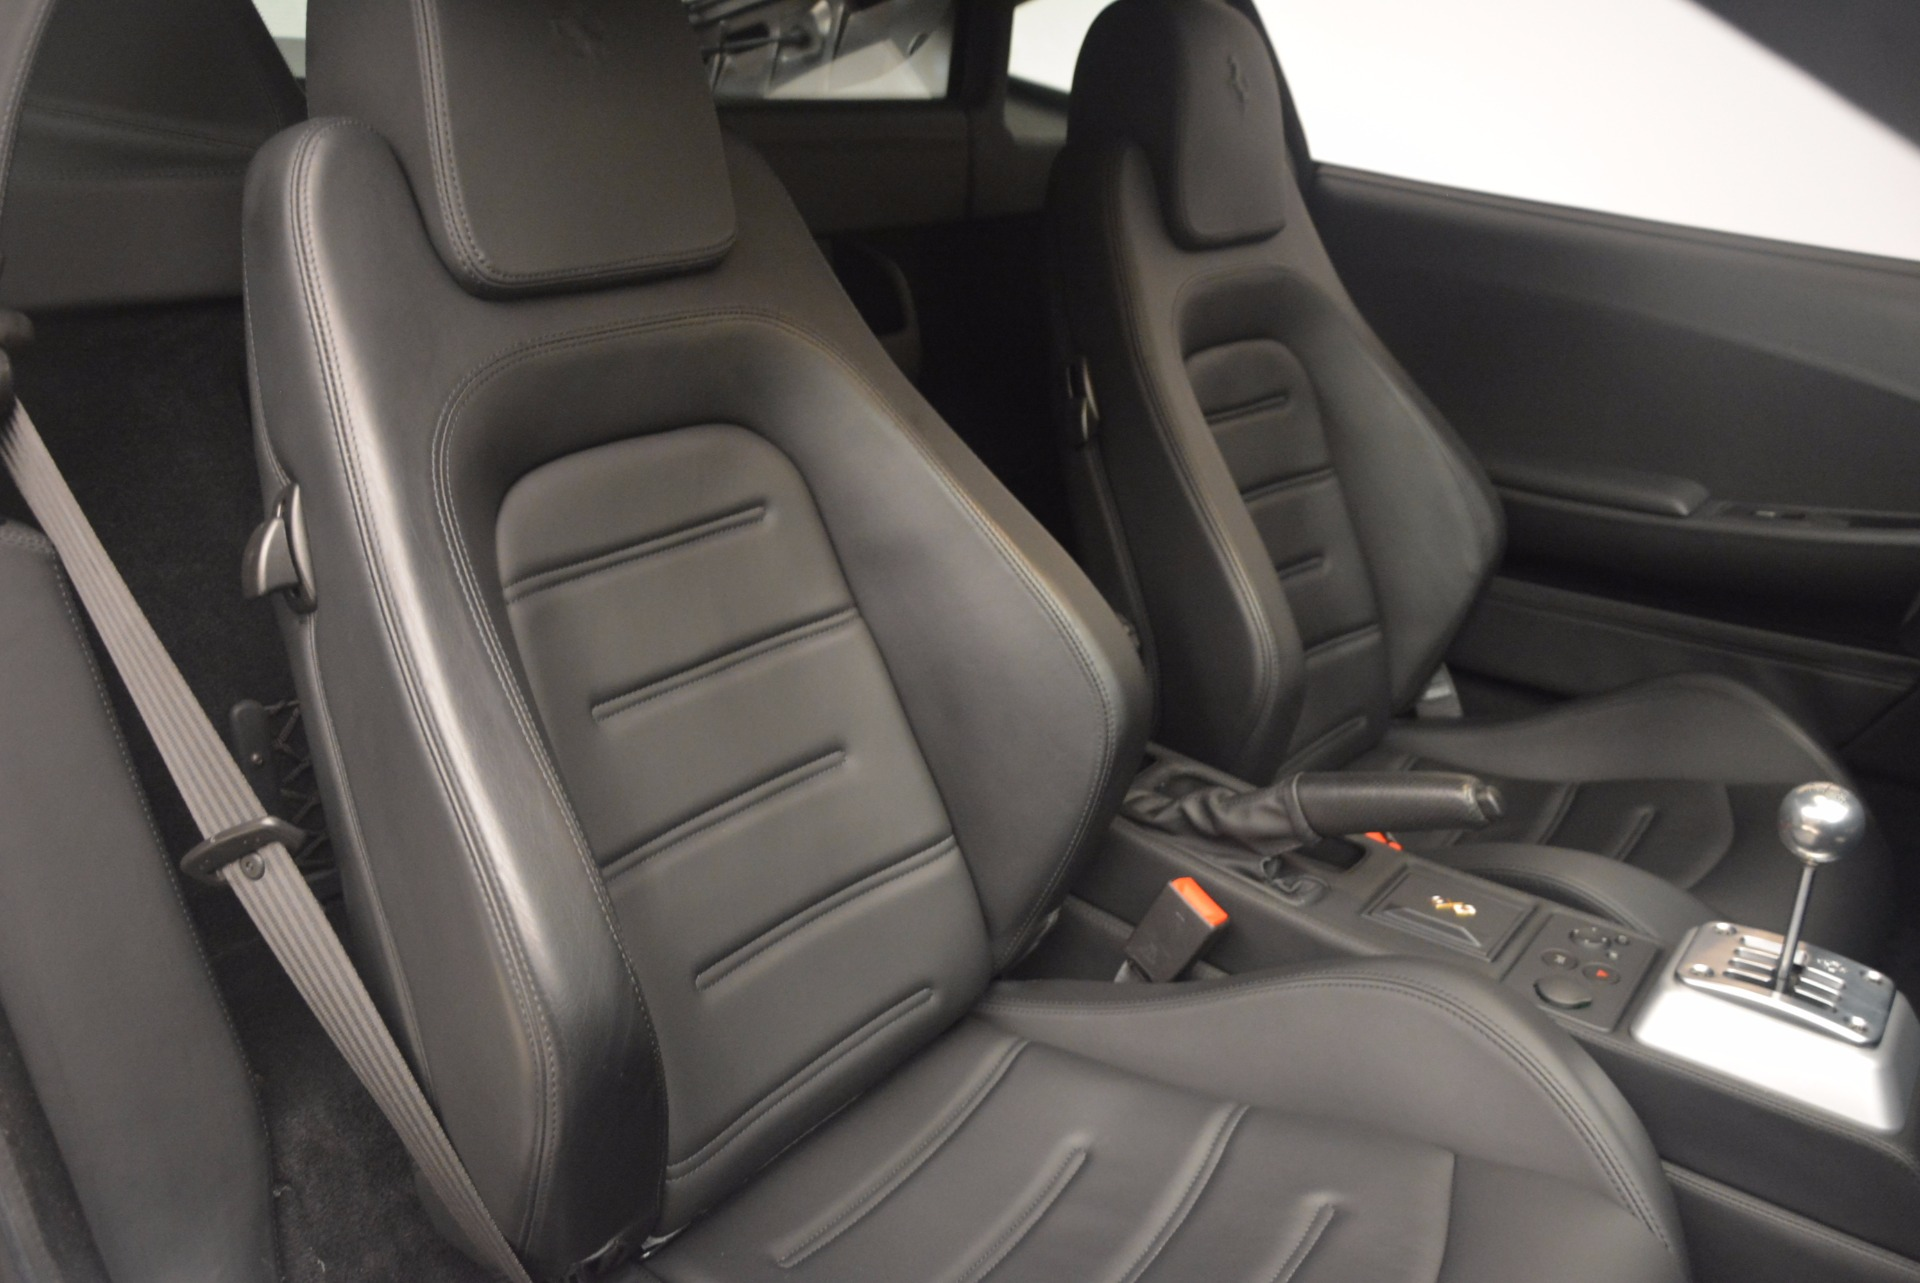 Used 2005 Ferrari F430 6-Speed Manual For Sale In Greenwich, CT 1286_p19